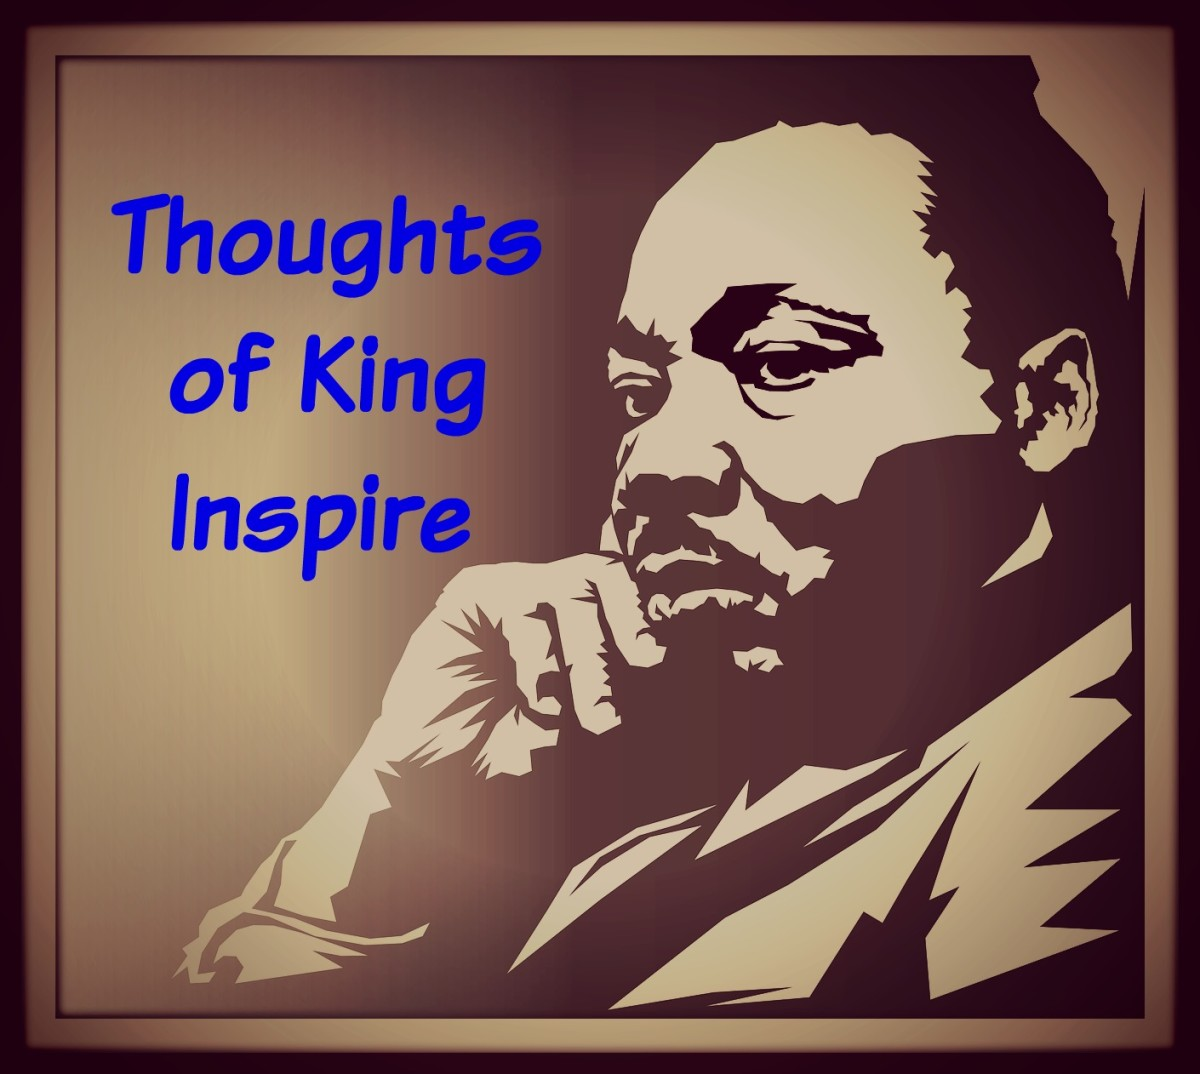 Thoughts of King: Inspirational Martin Luther King, Jr. Quotes